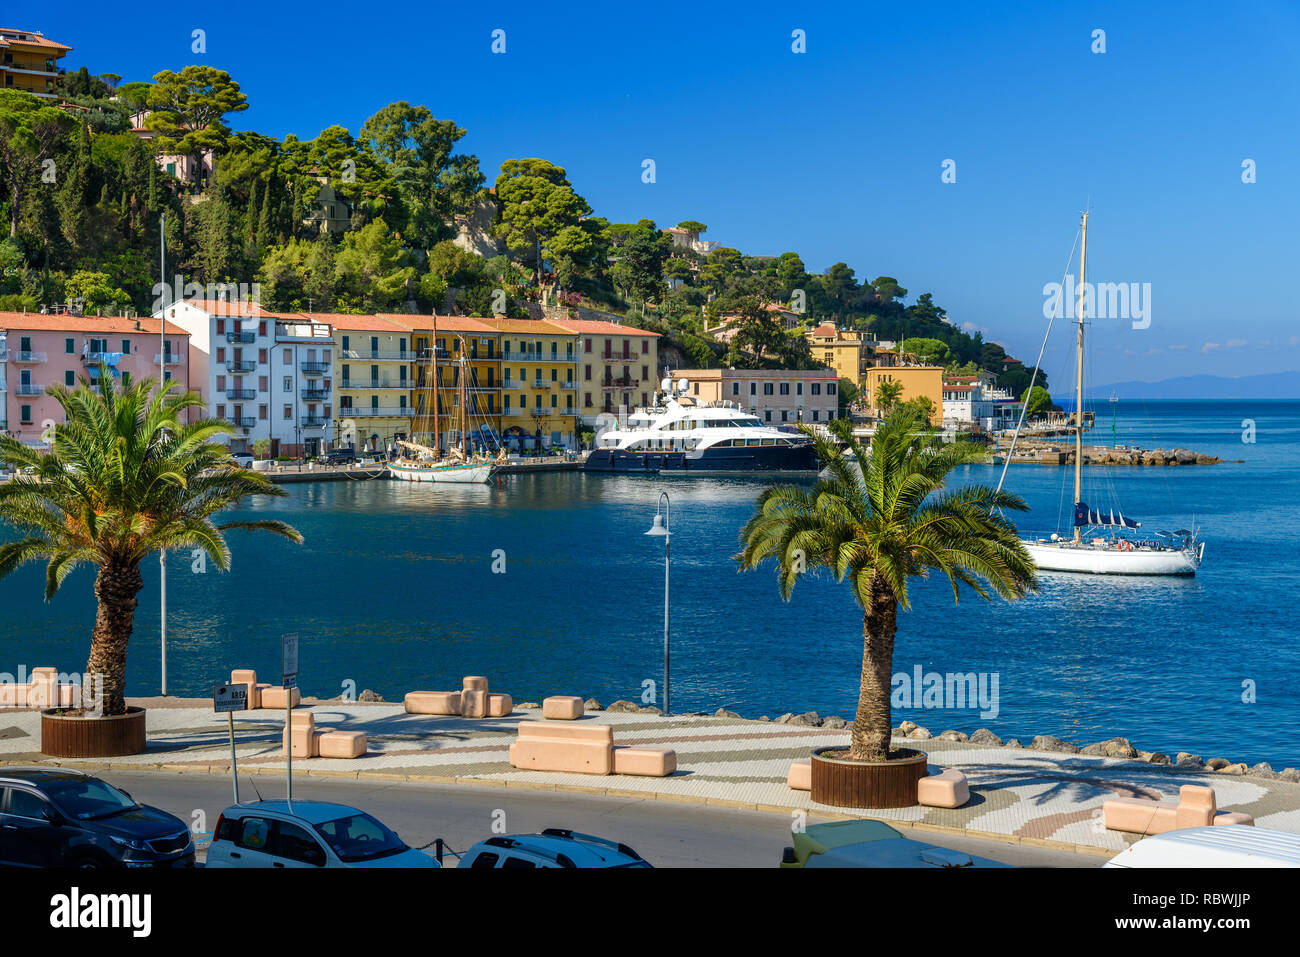 Seafront of seaport town Porto Santo Stefano in Monte Argentario in Tuscany. Italy - Stock Image